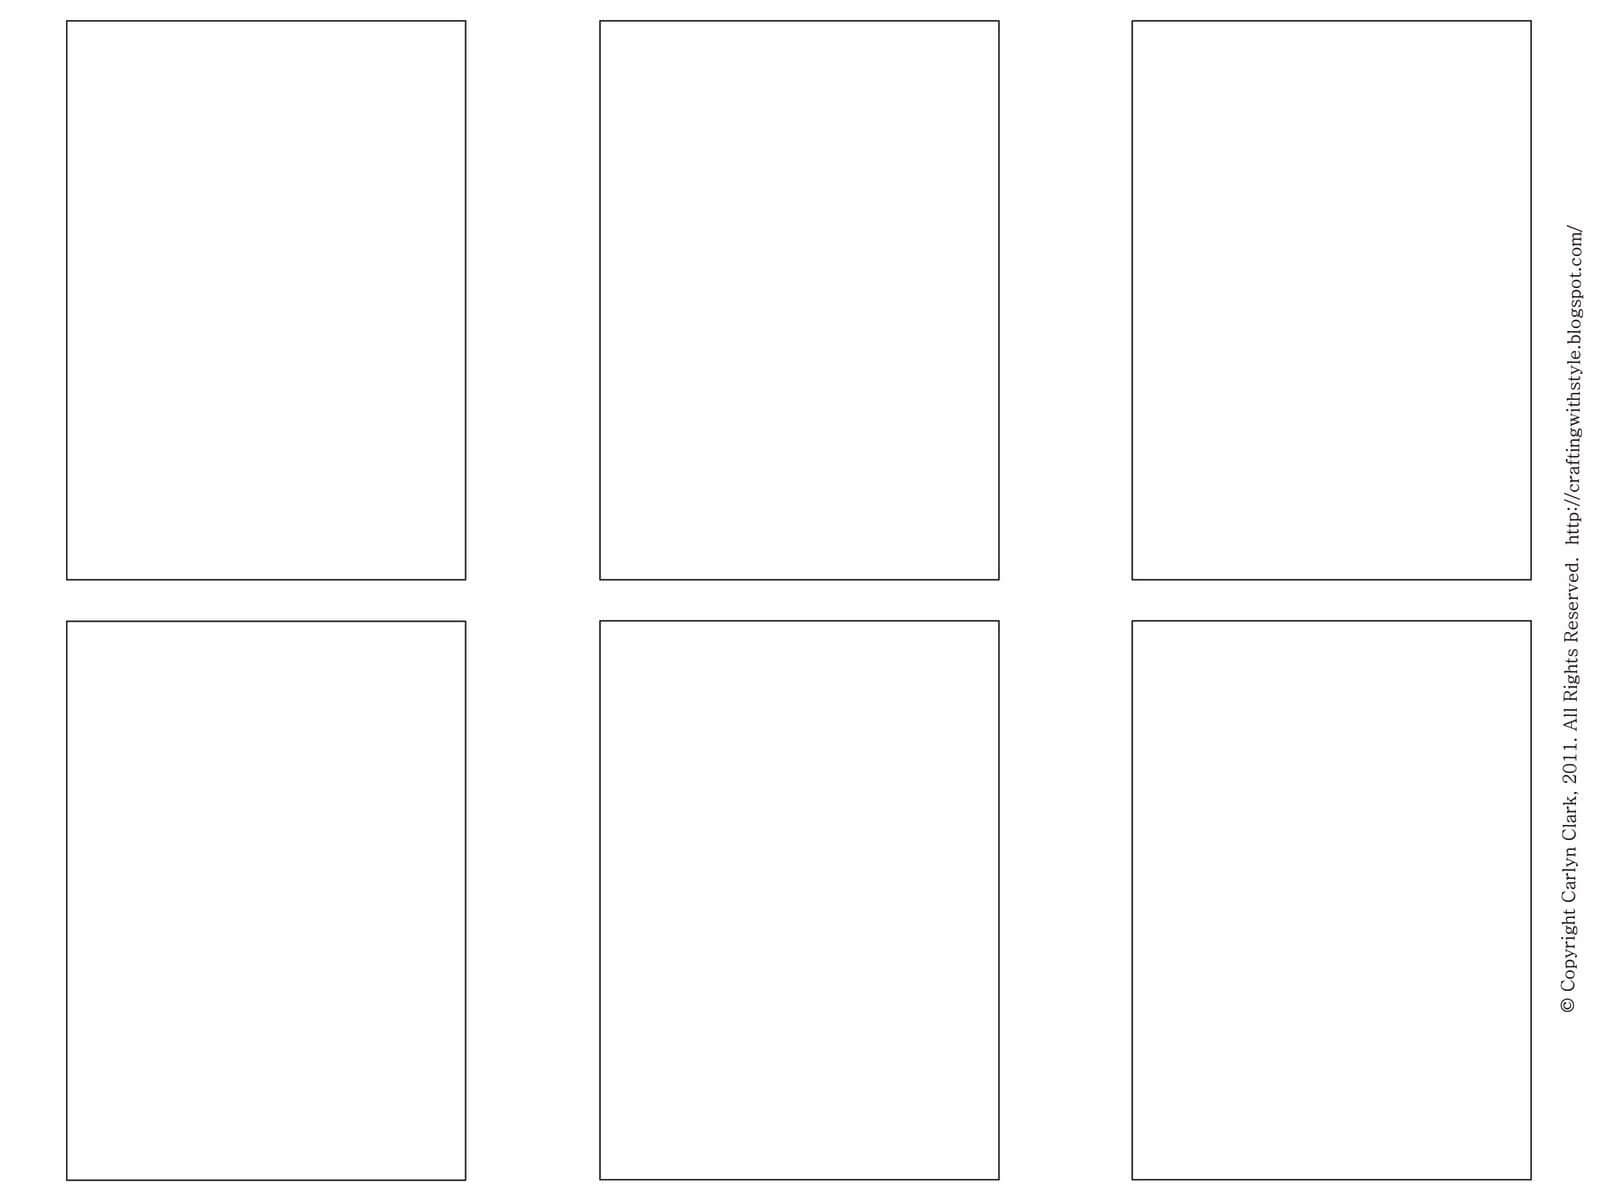 30 Free Trading Card Template Download | Simple Template Design throughout Free Trading Card Template Download